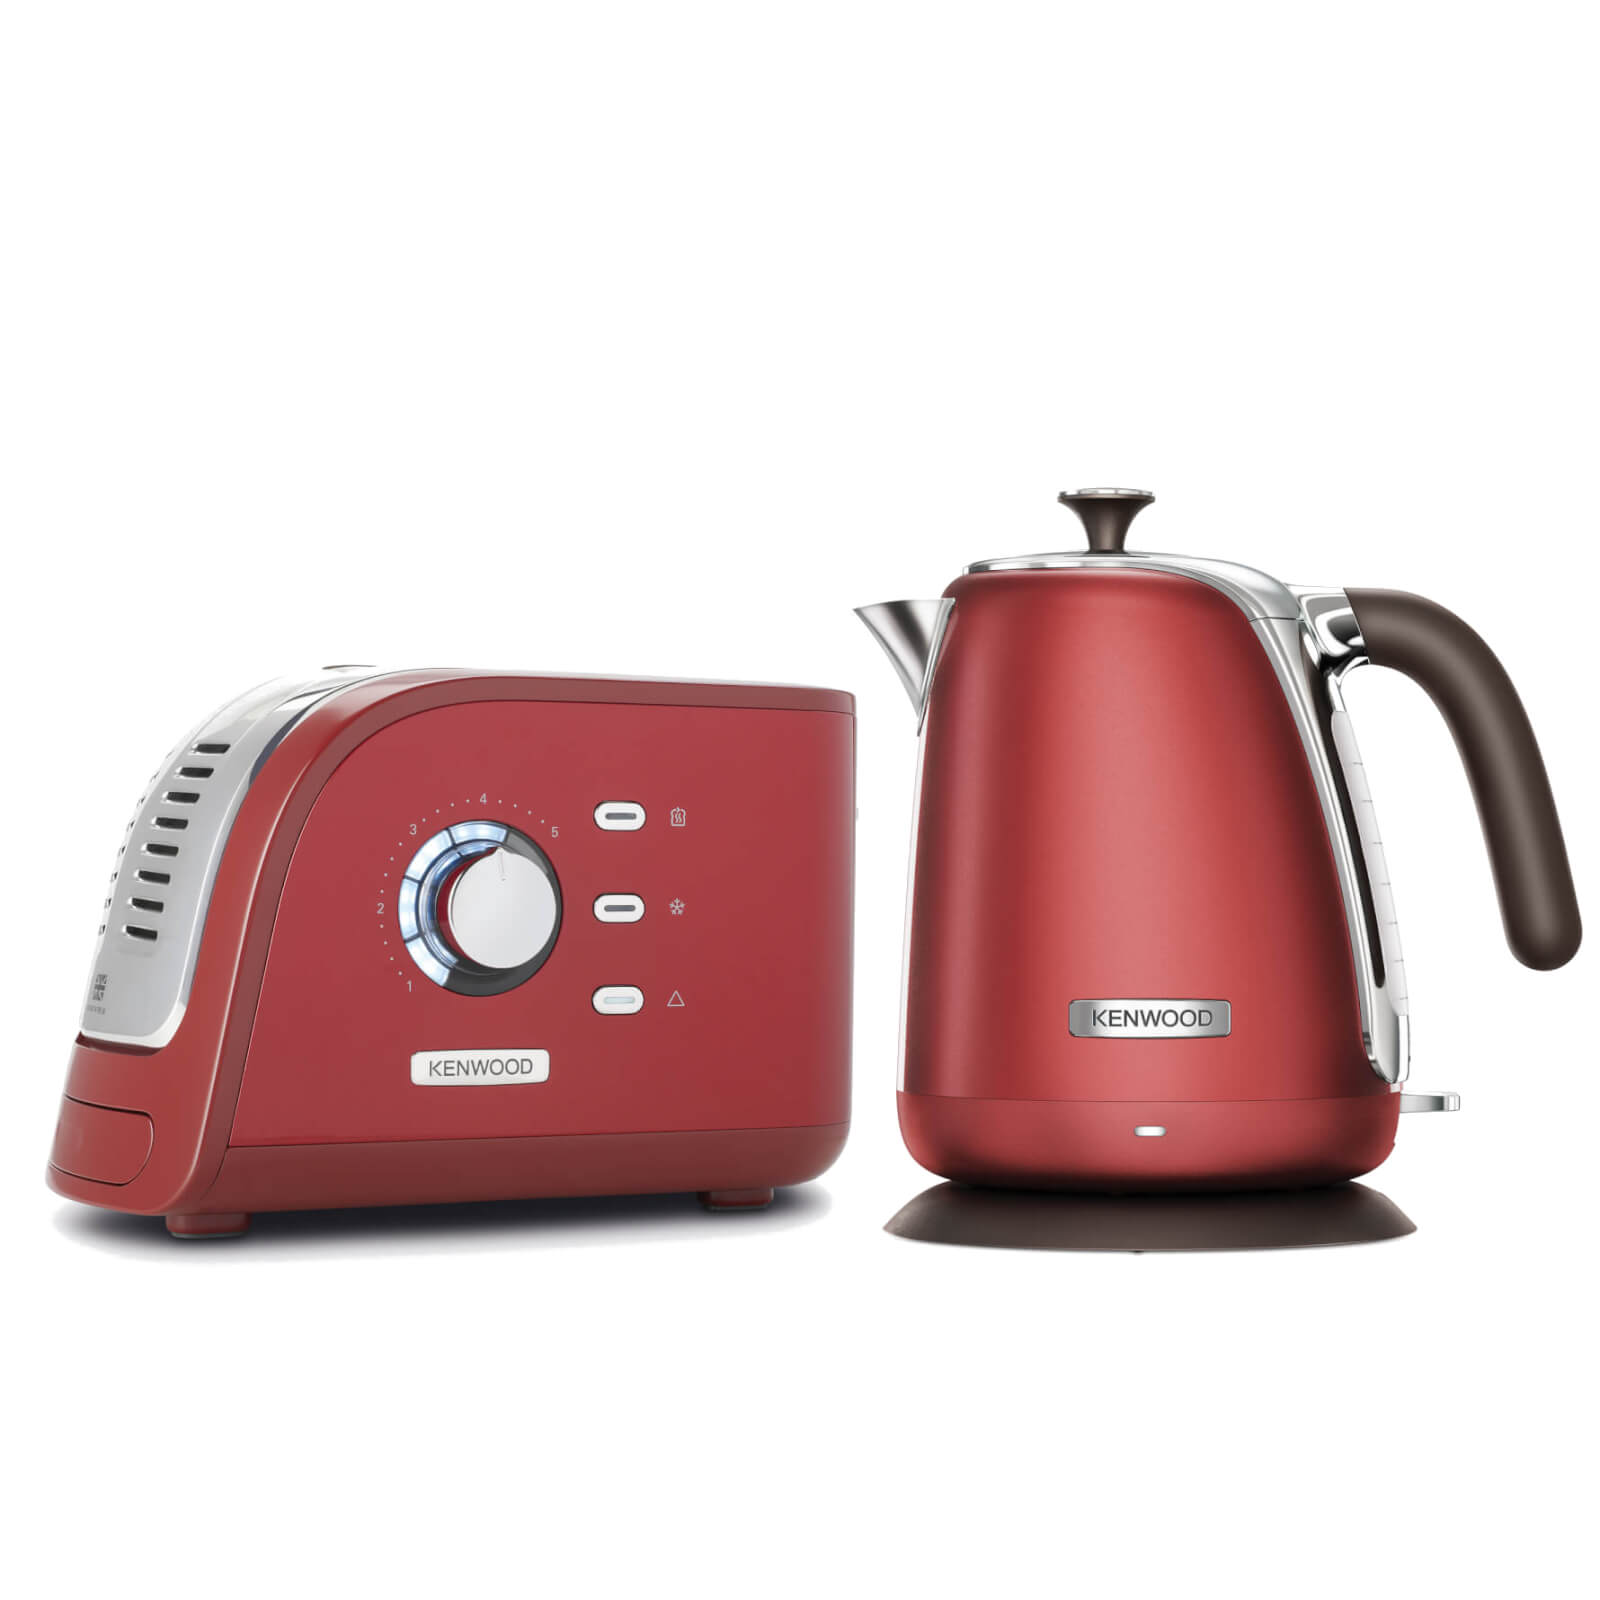 Kenwood Turbo Collection Kettle and Toaster Bundle - Red